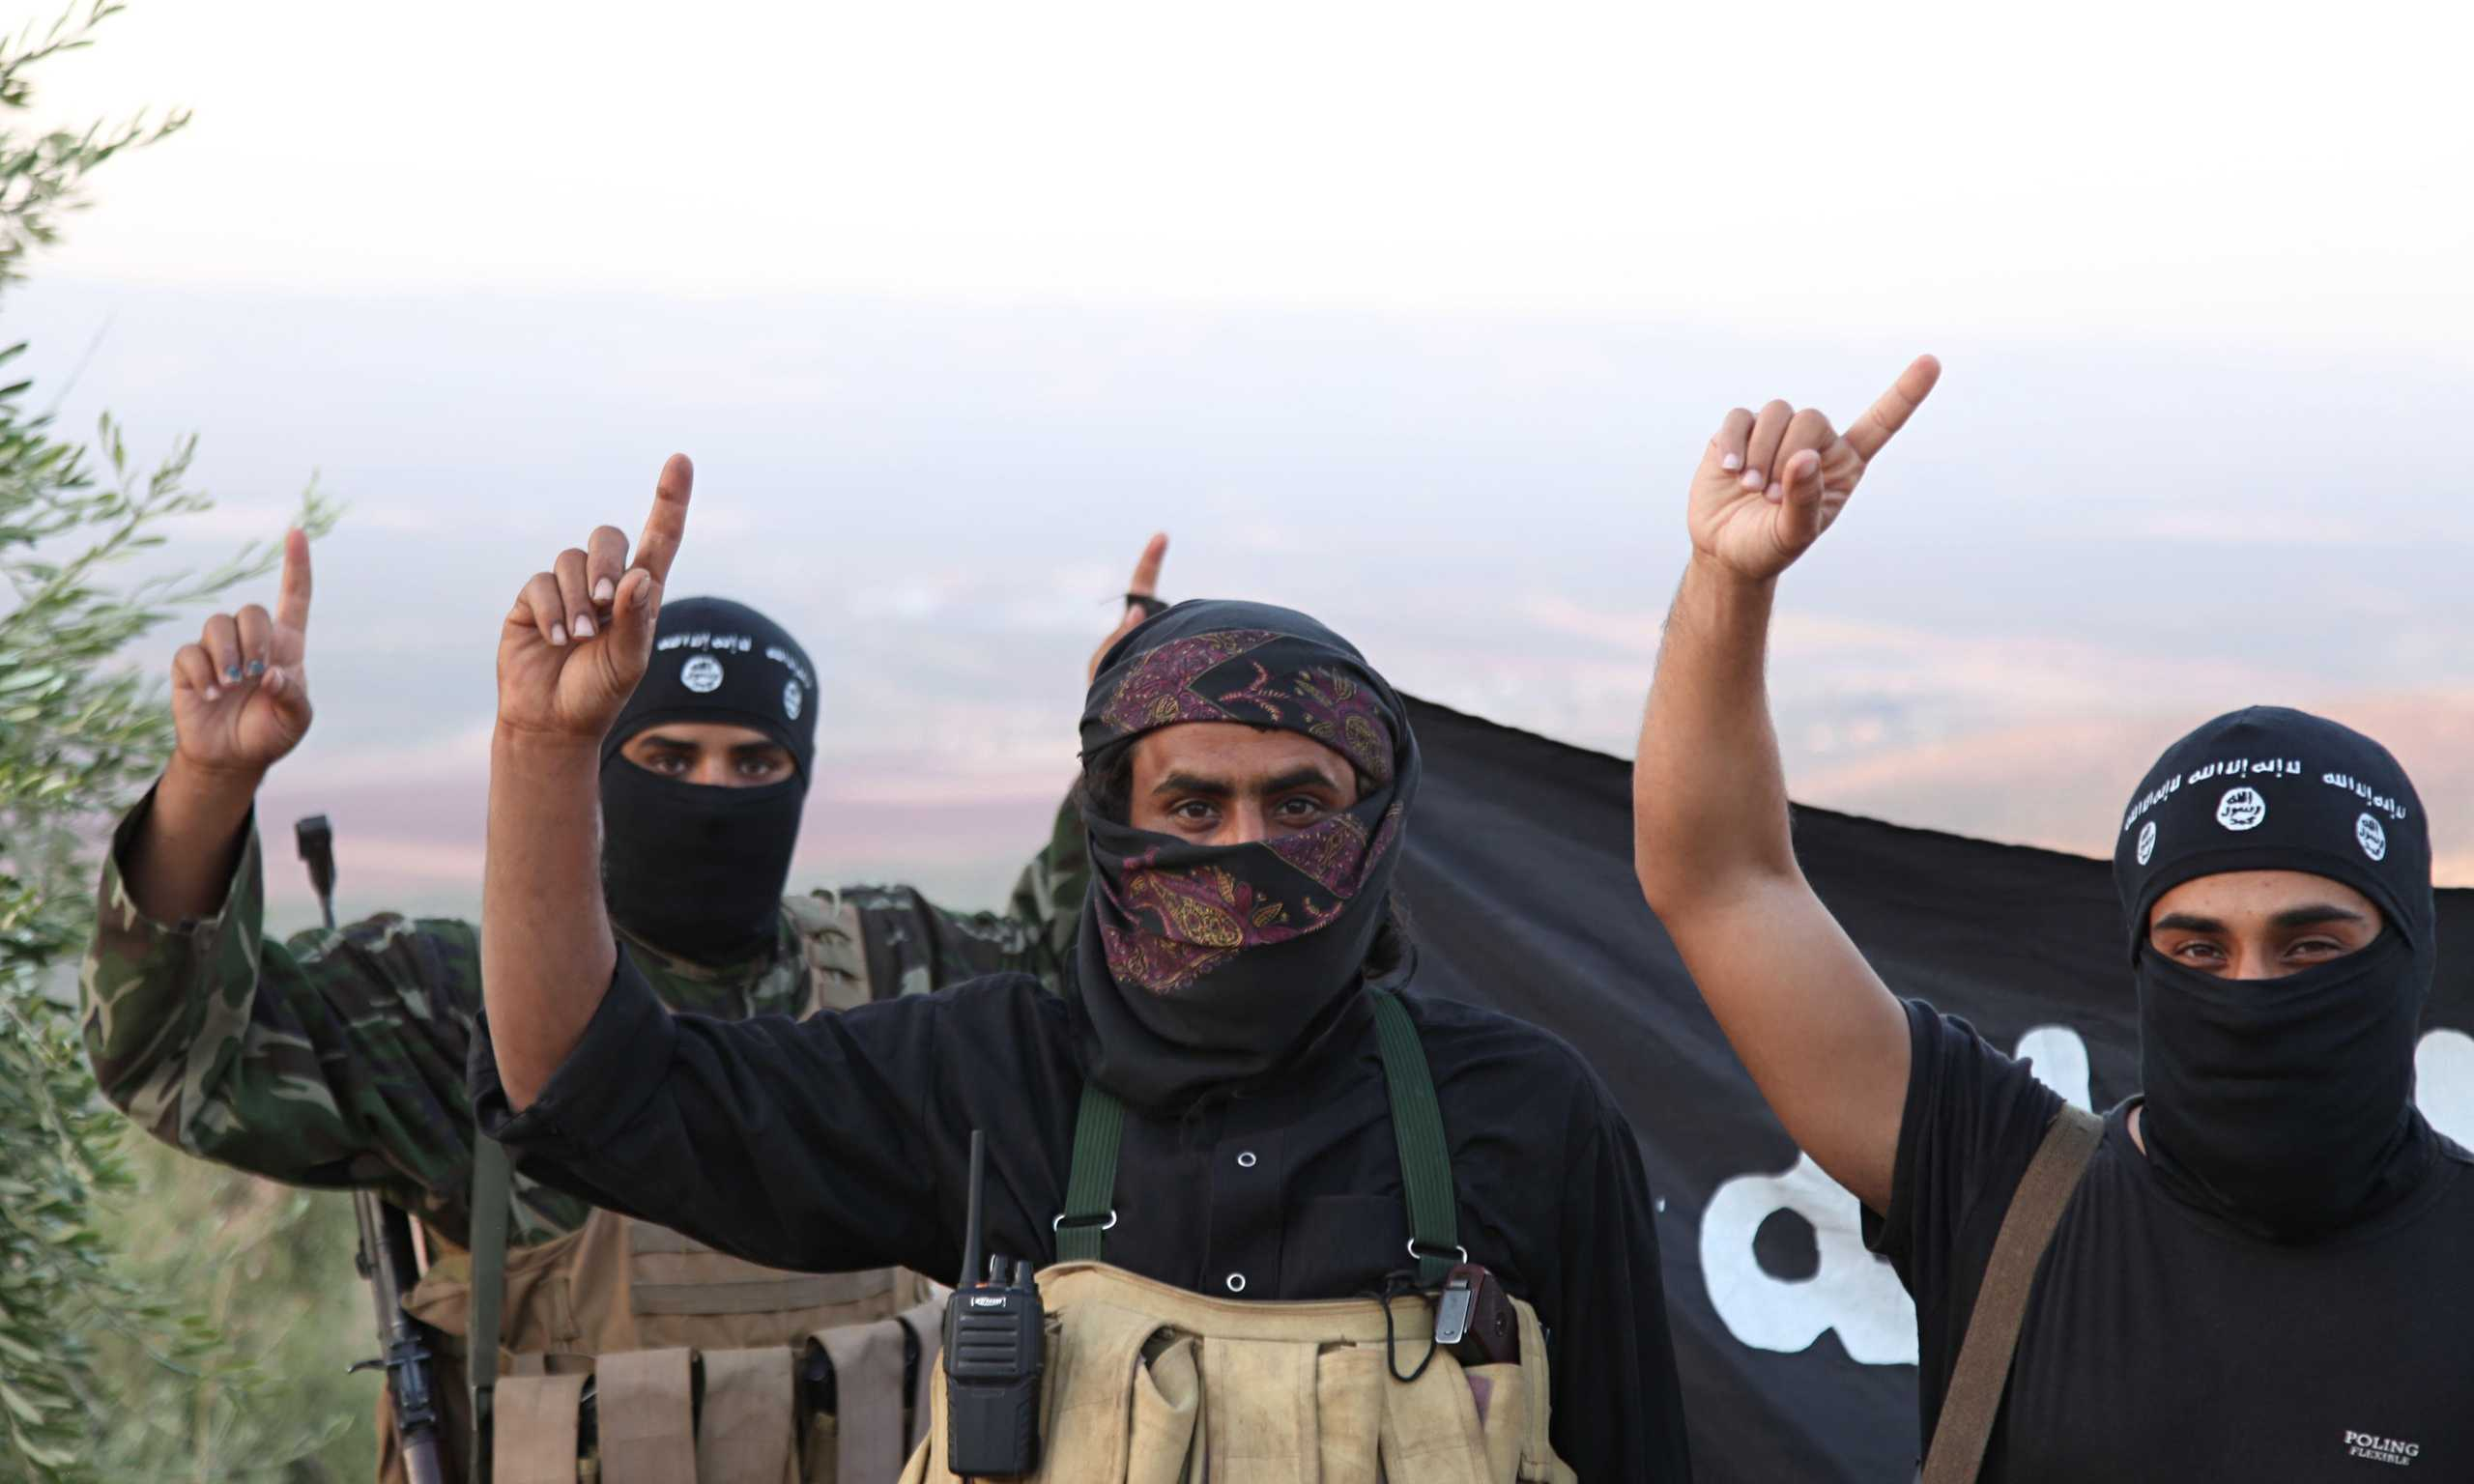 ISIS Fighters-fnbworld